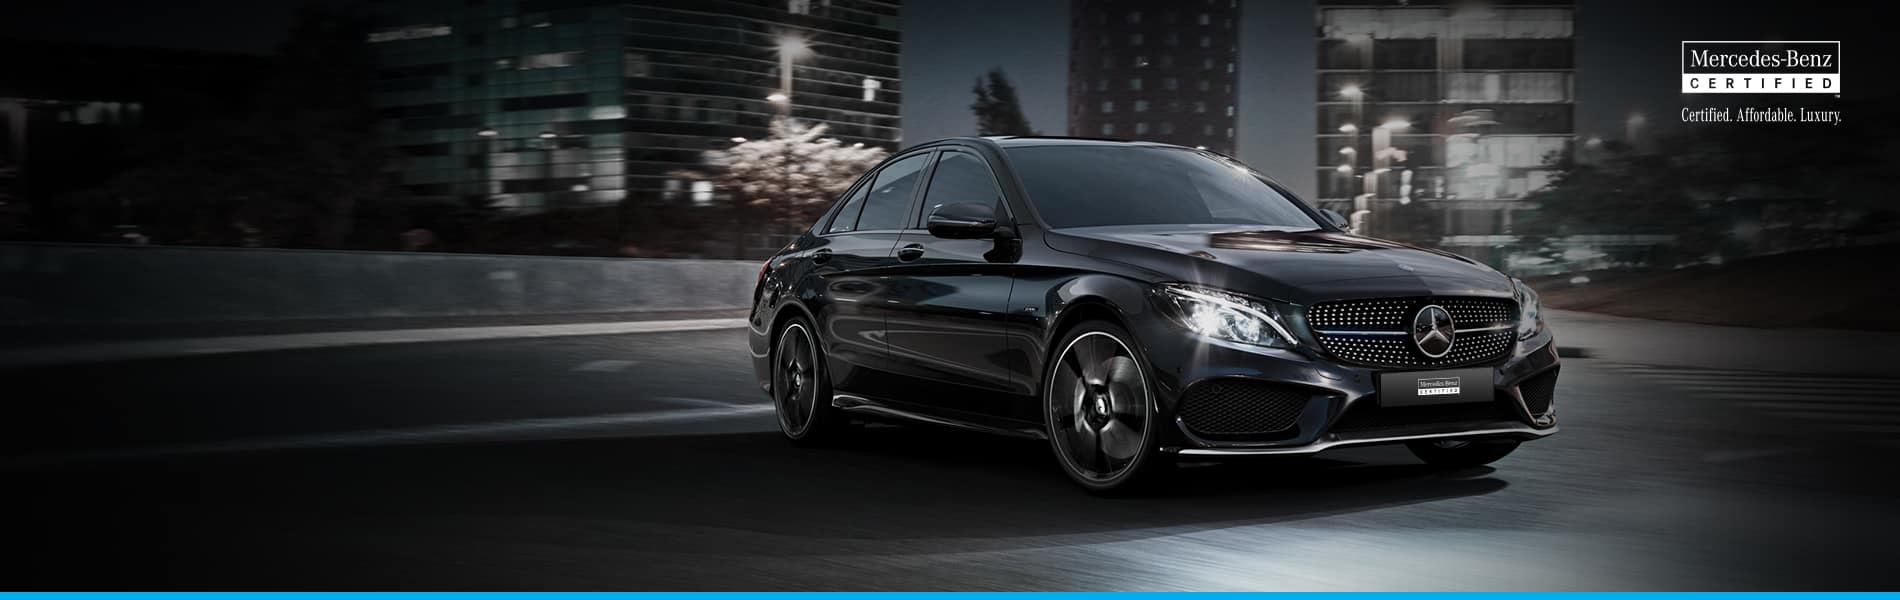 Certified Pre Owned Mercedes >> Discover Certified Pre Owned Vehicles Mercedes Benz Markham